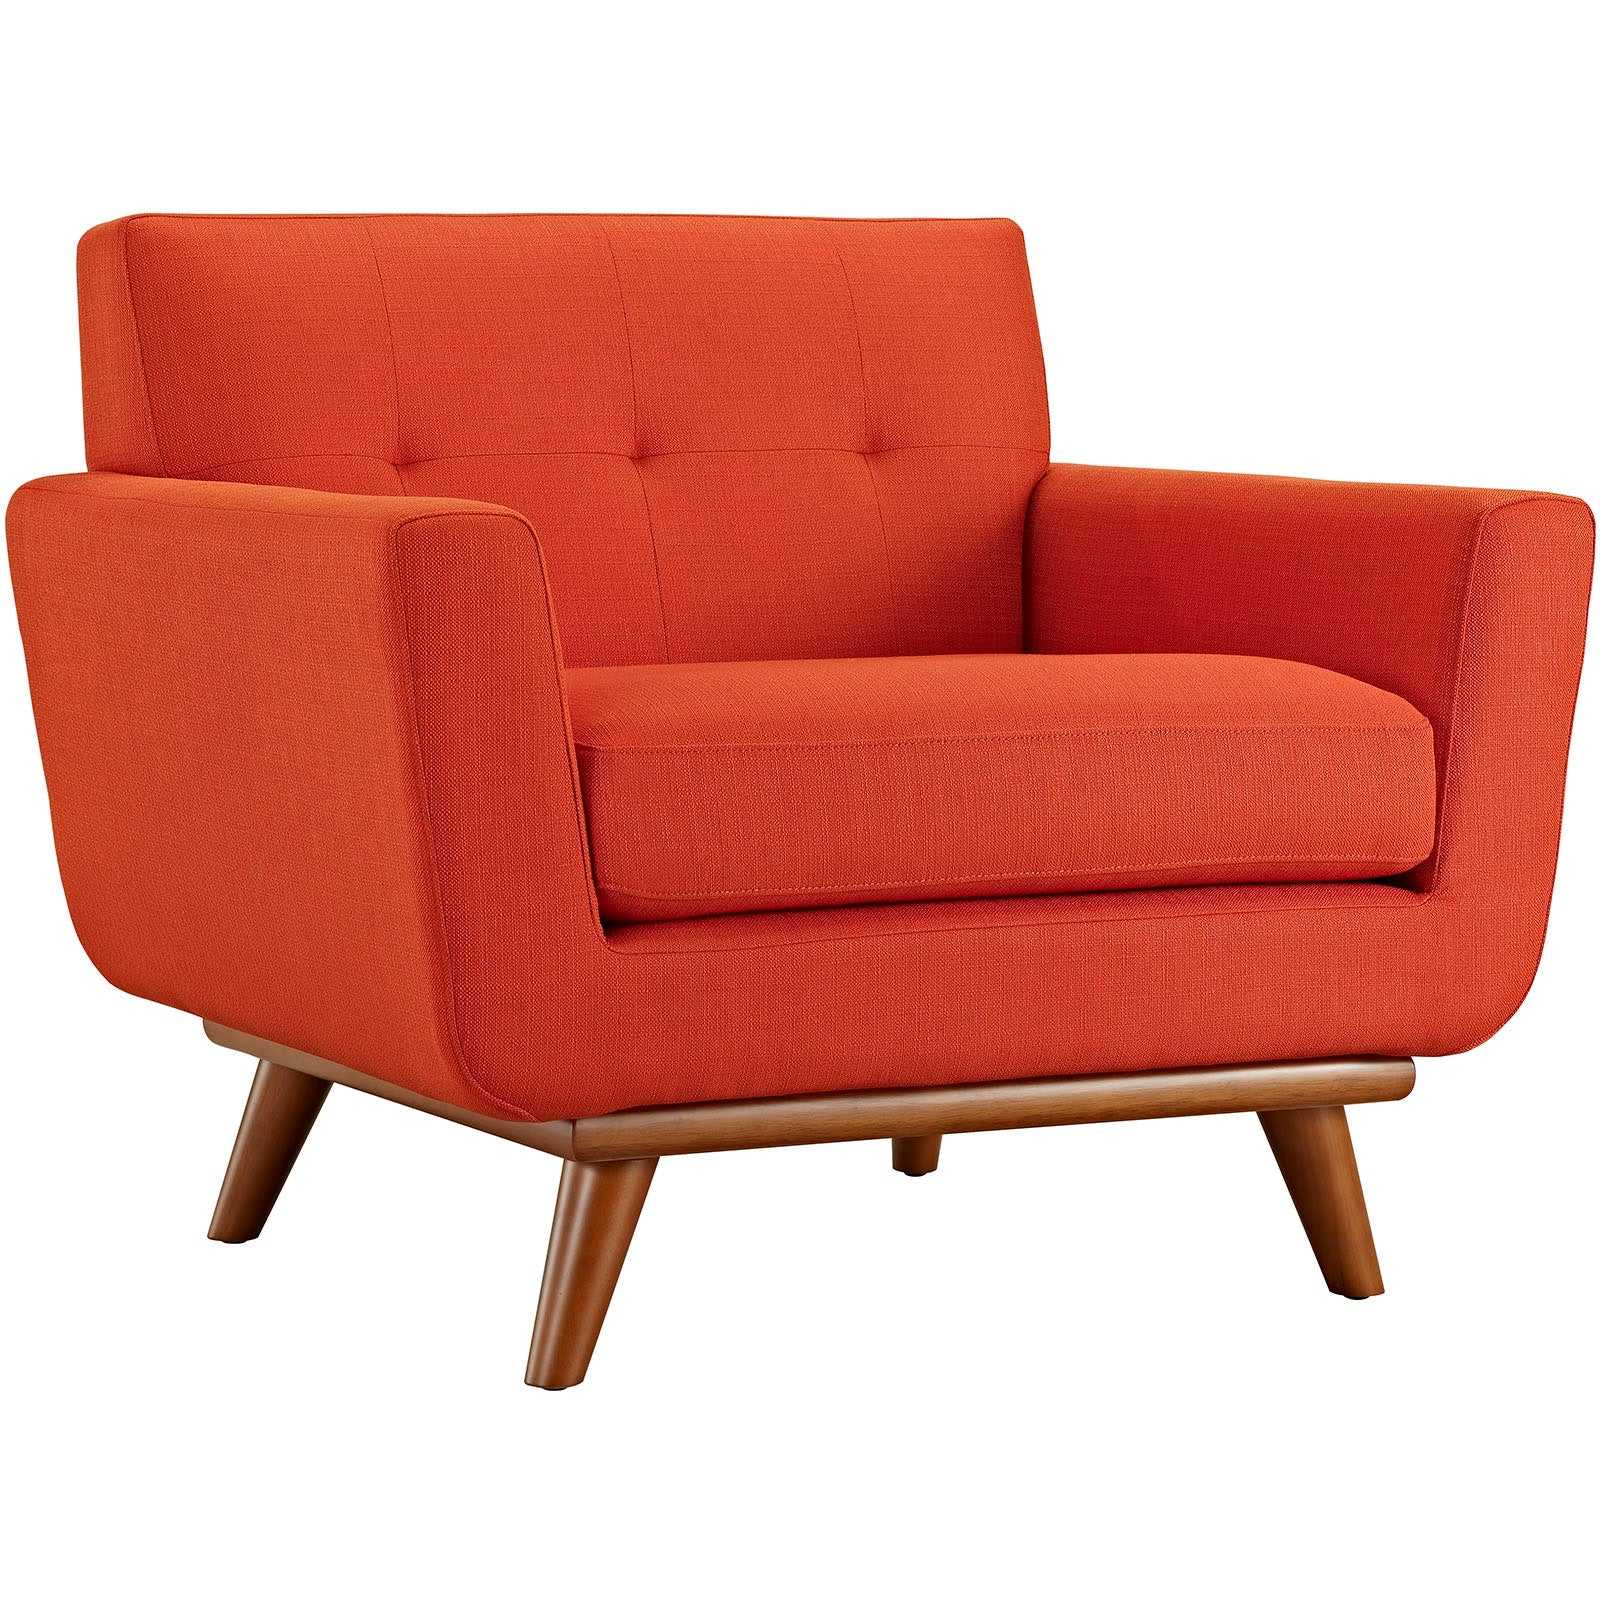 Engage 2 Piece Armchair and Ottoman - Atomic Red